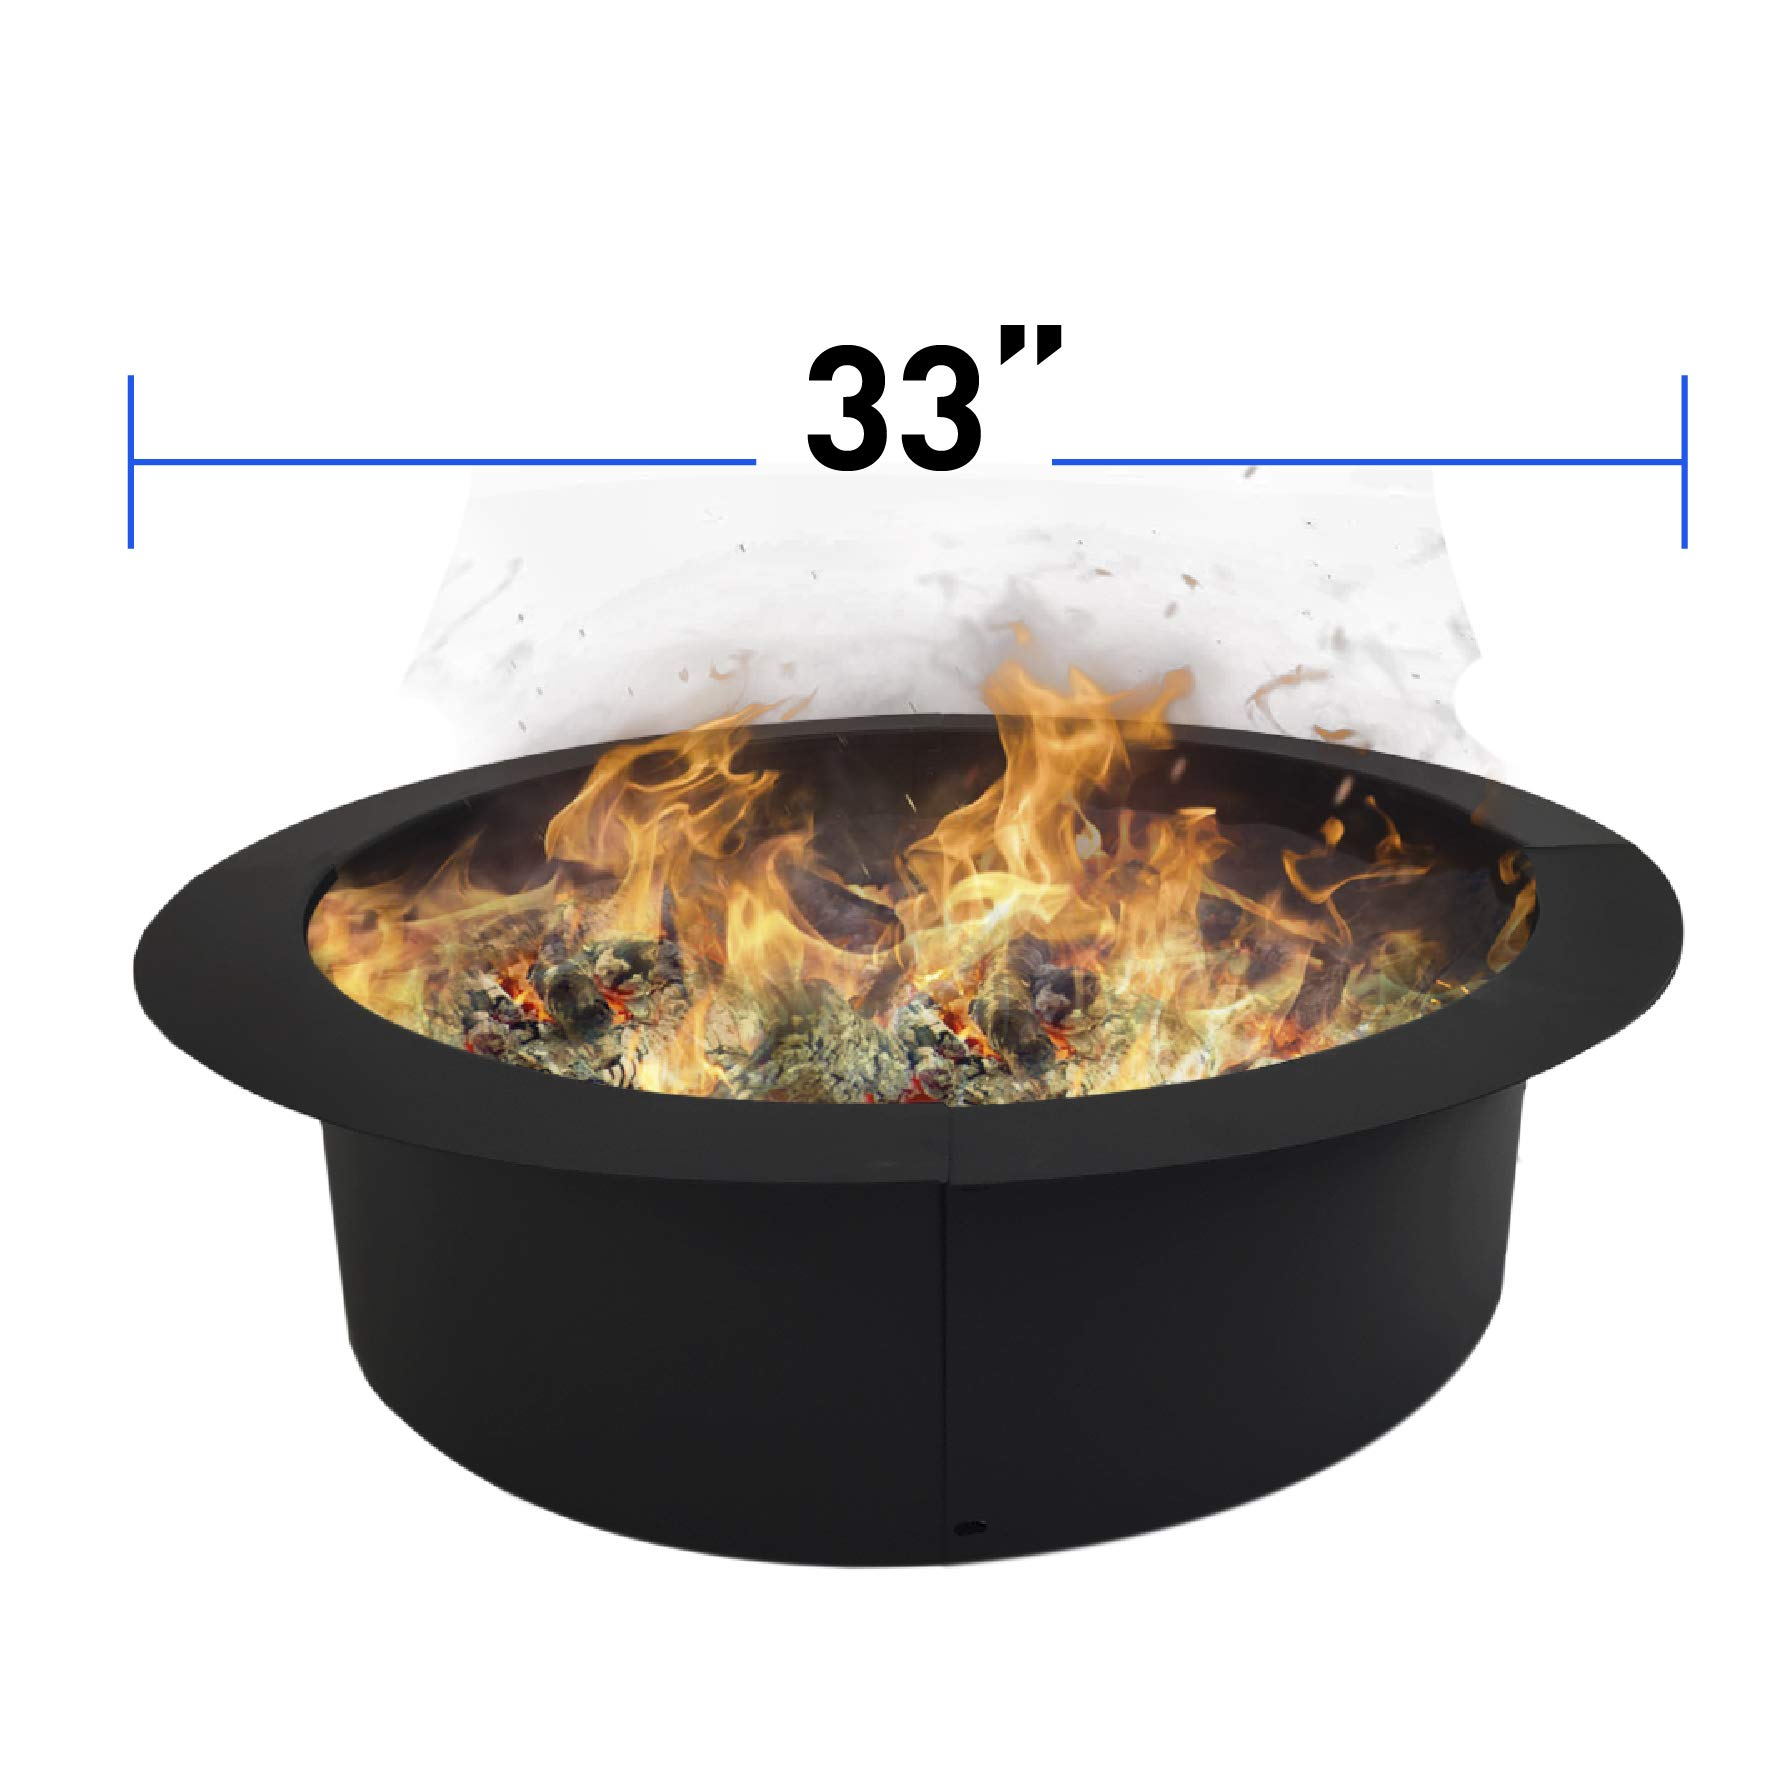 EasyGoProducts EGP-GARD-022 EasyGo Ring - Solid Steel DIY Fire Pit Liner - Heavy Duty - Black Color - Above Ground or in Ground-33 Inch Outside 27 Inch Inside Diameter, 33'' by EasyGoProducts